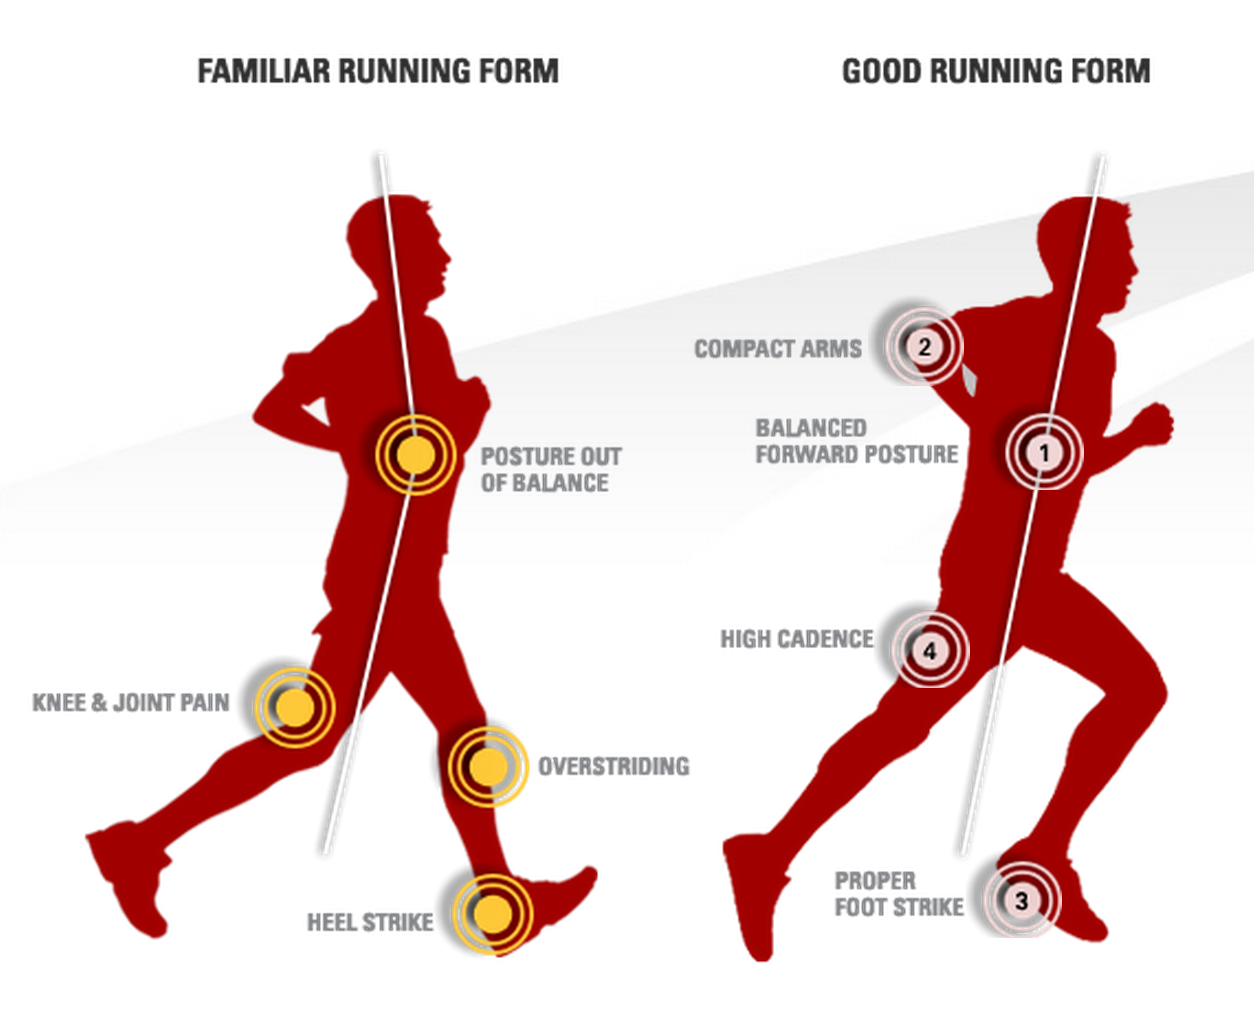 There are 4 key steps to great running form, founder Golden Harper ...